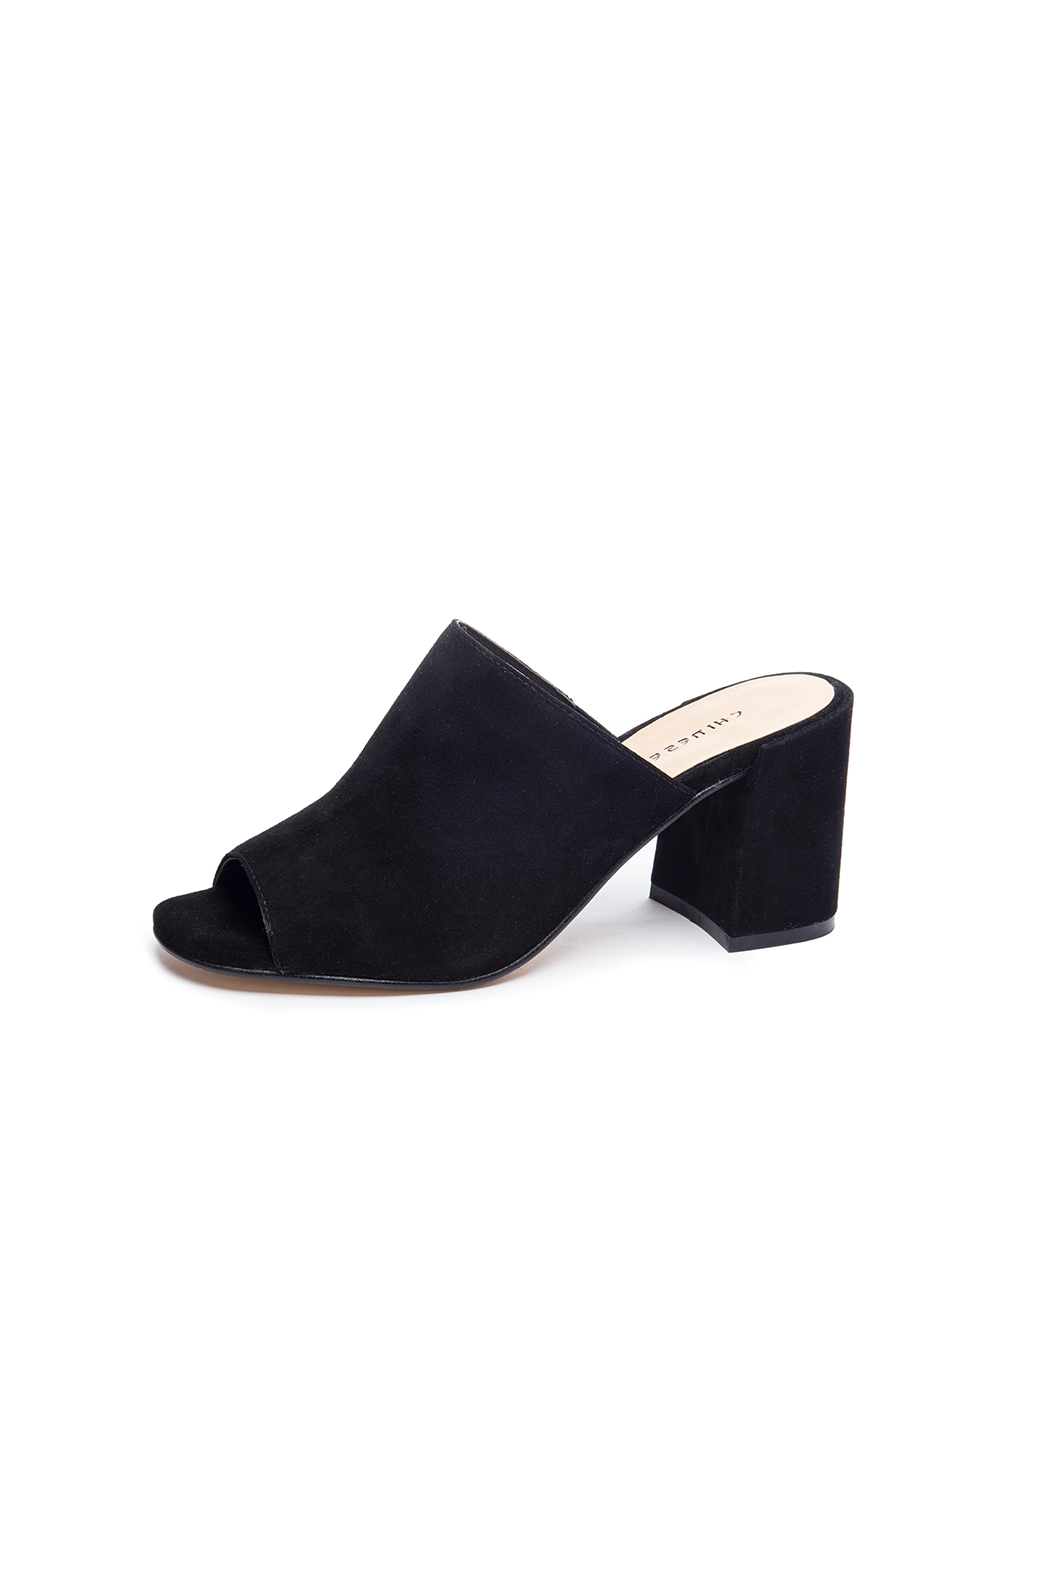 68ede617b134 Chinese Laundry Sammy Peep Toe Mule from New York by Luna — Shoptiques